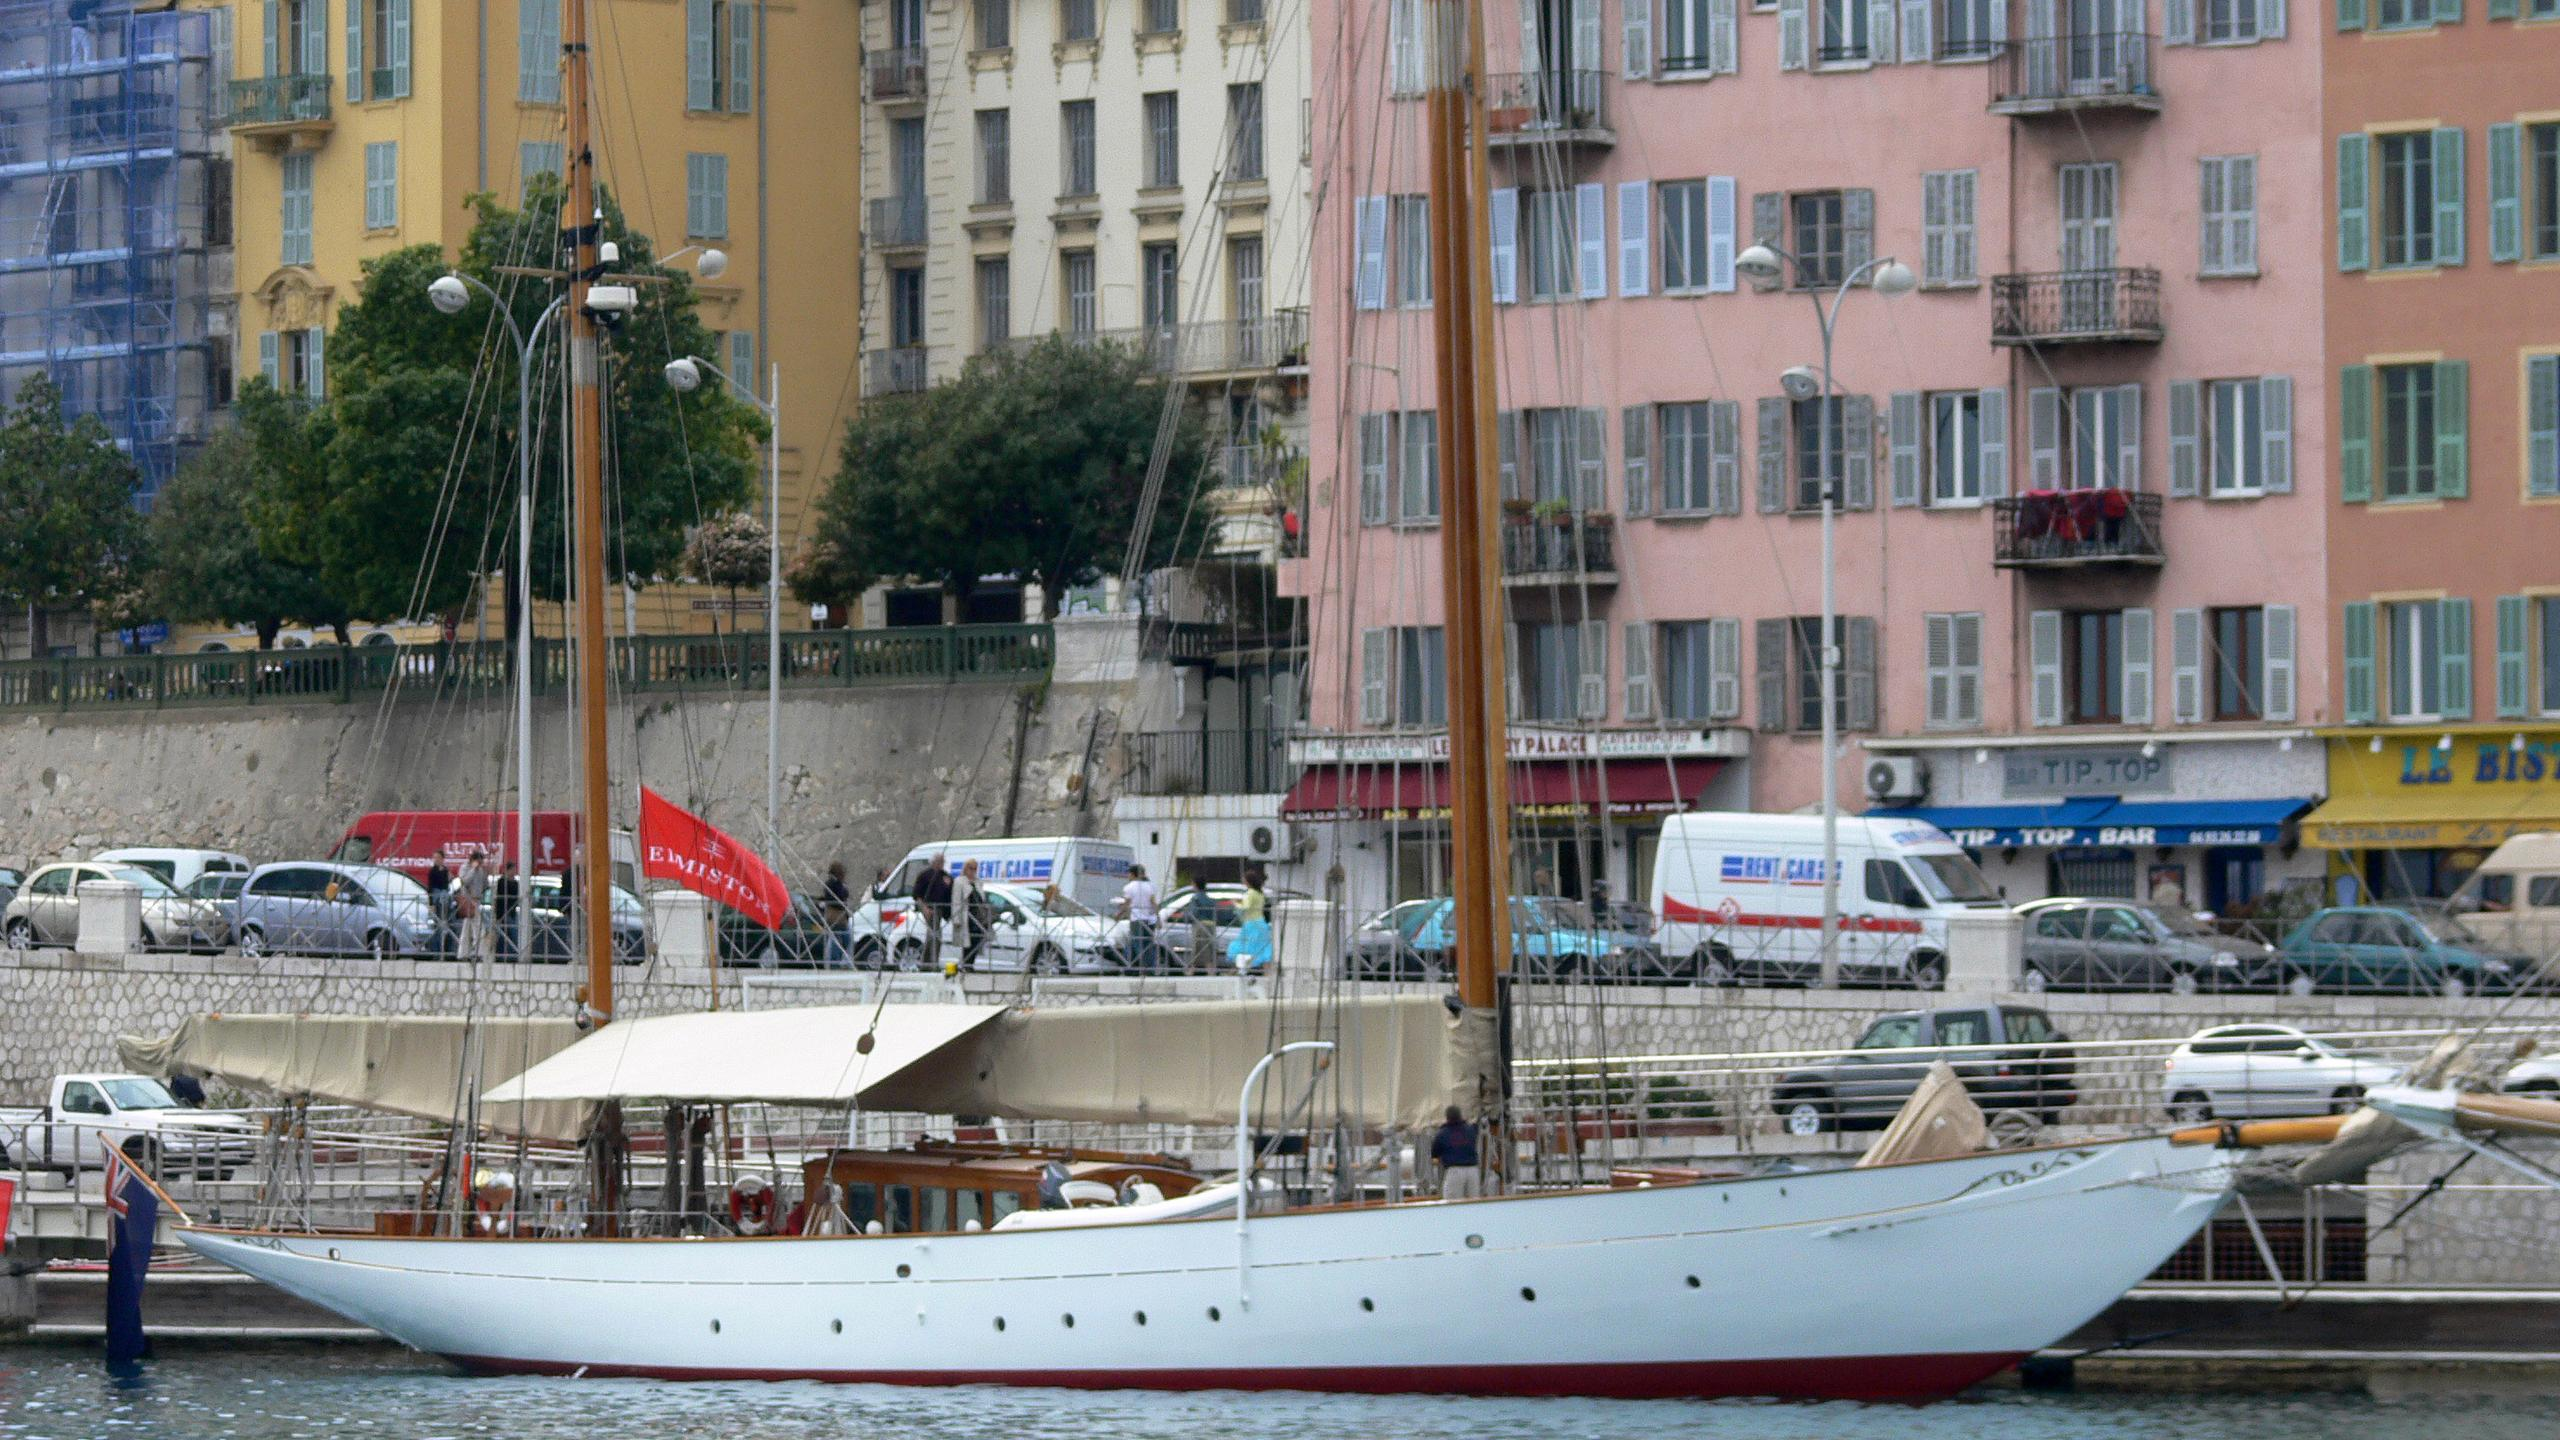 thendara-sailing-yacht-stephen-sons-1937-37m-moored-profile